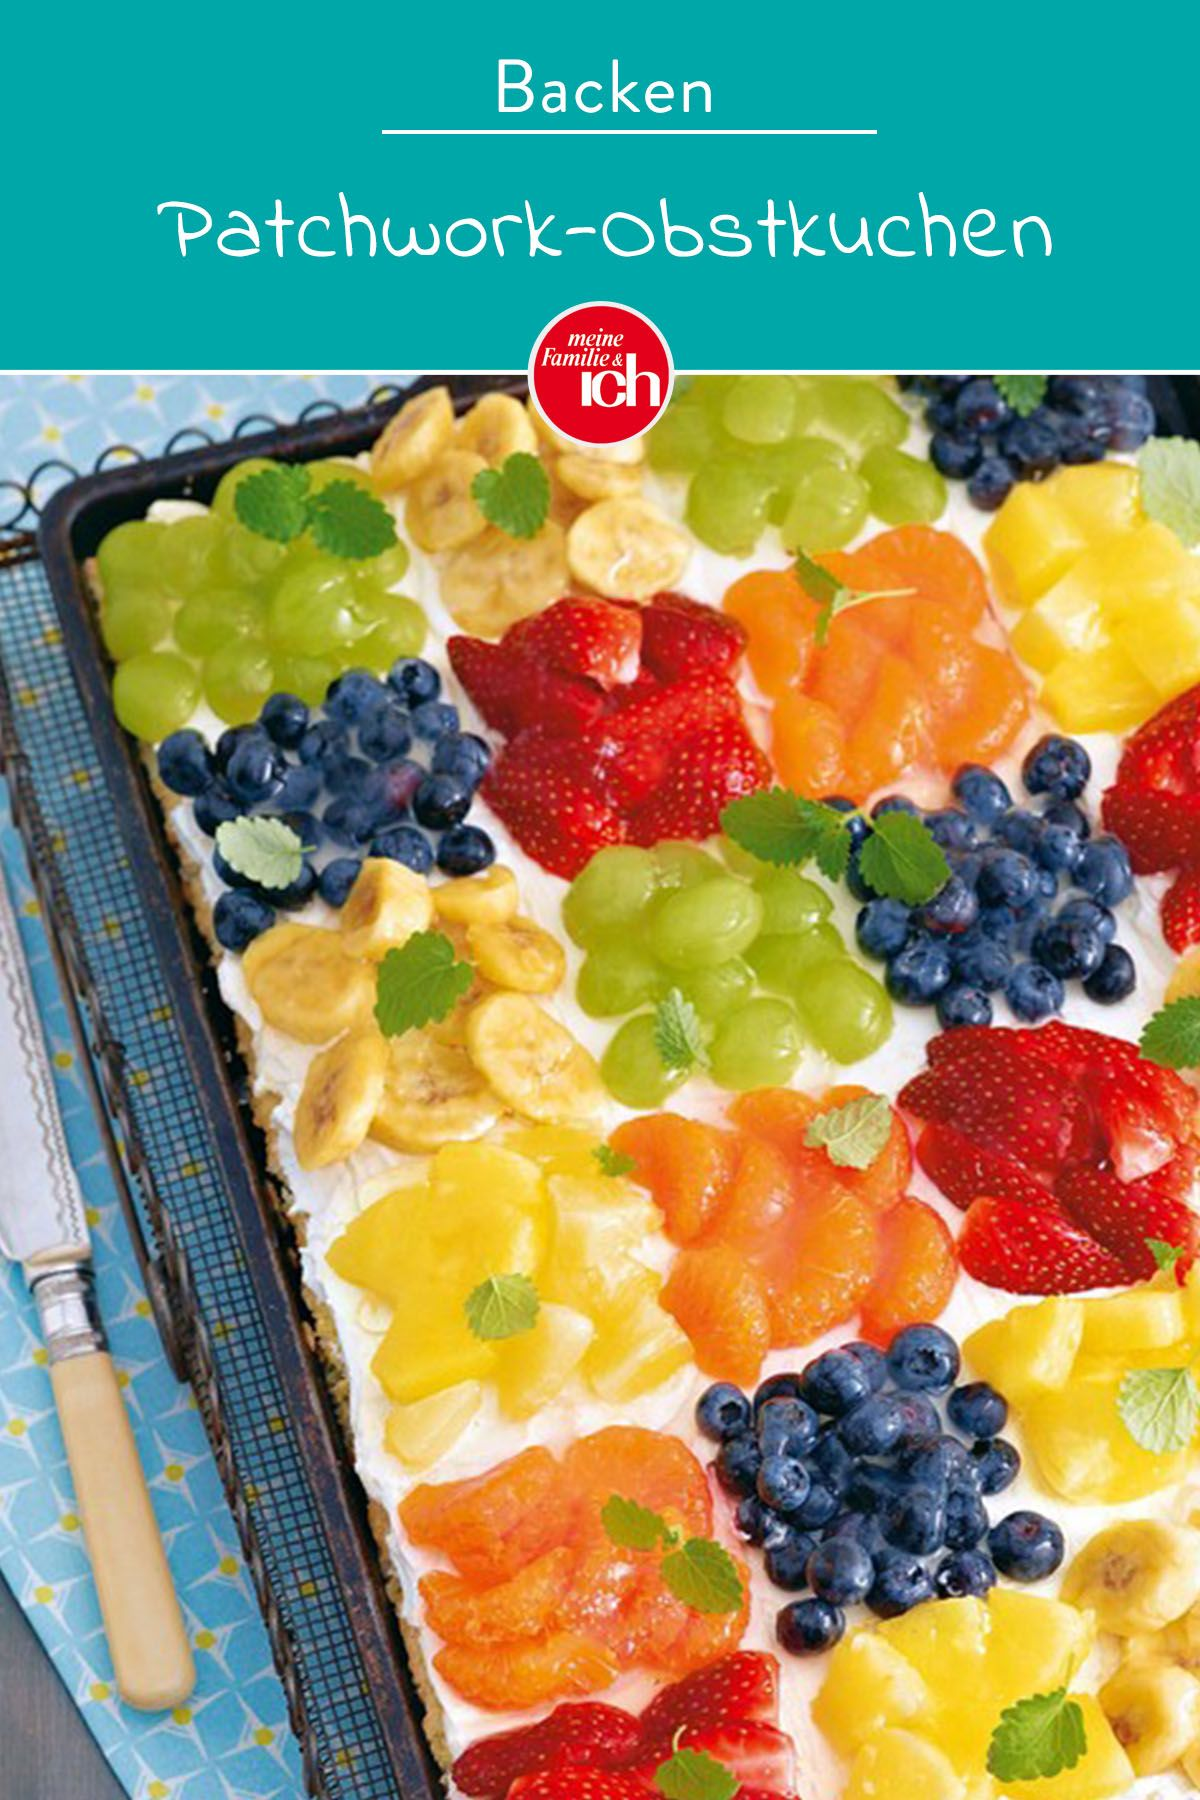 Patchwork-Obstkuchen